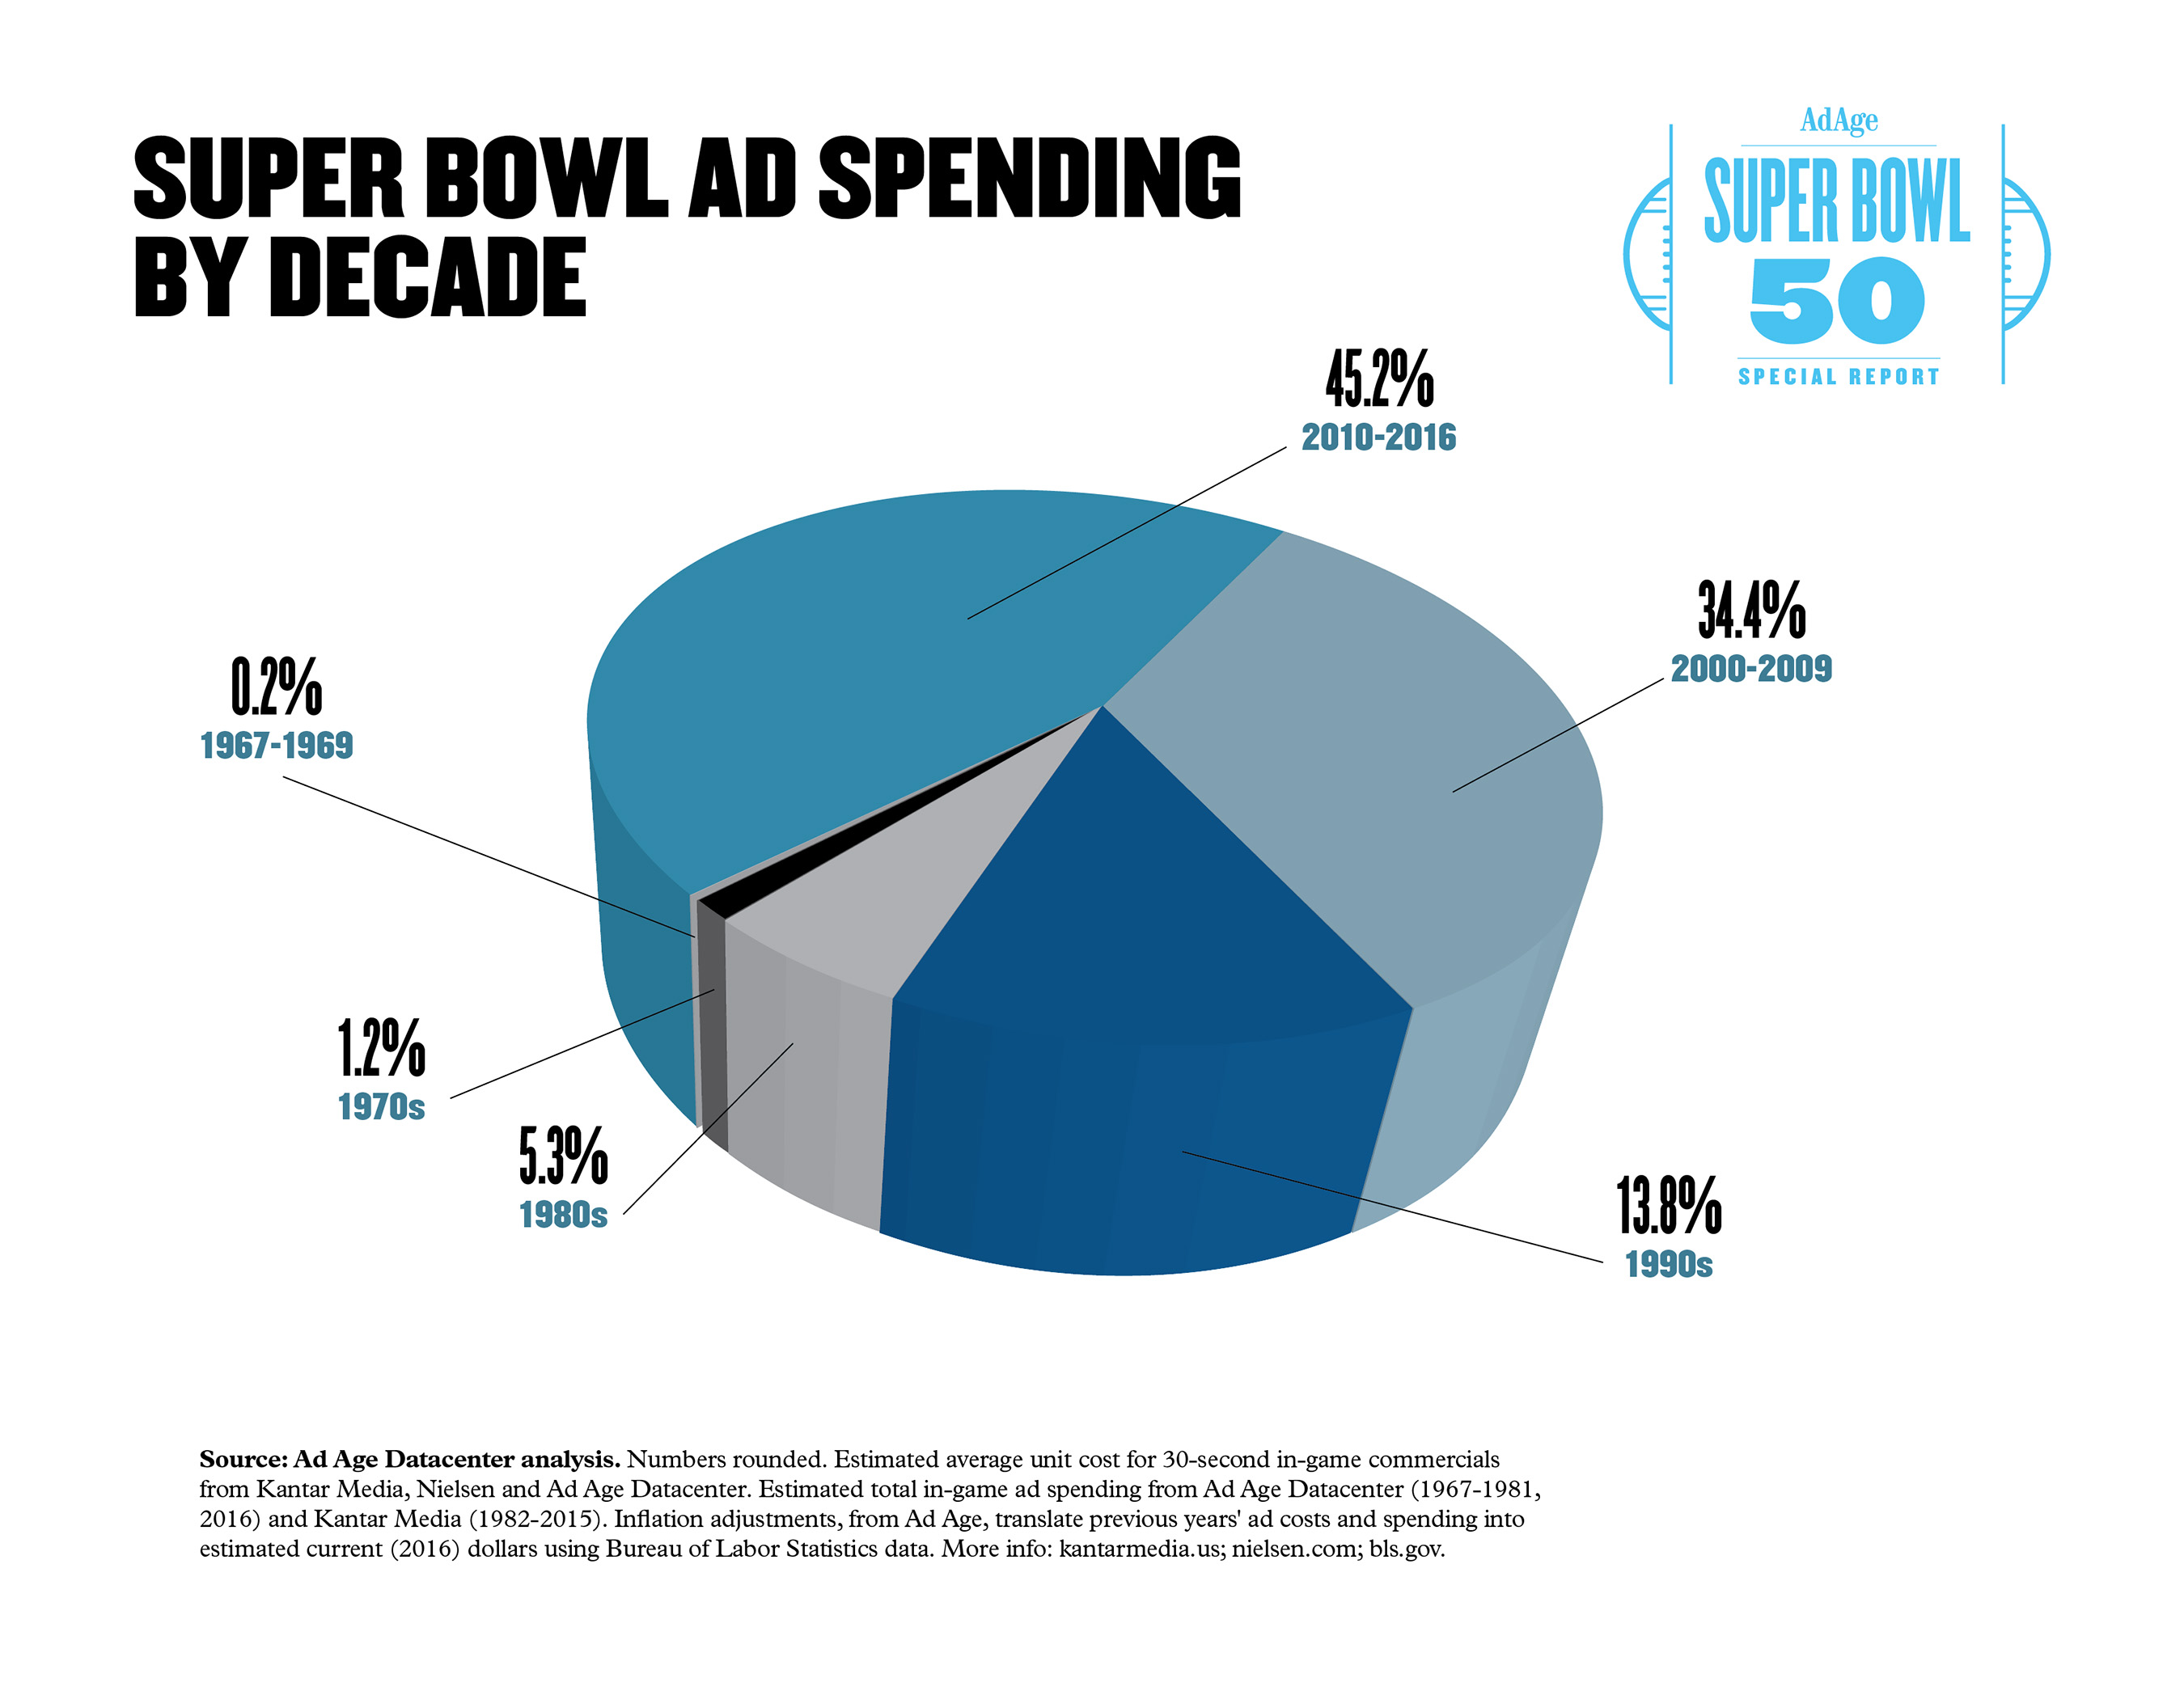 Graphic: Super Bowl Ad Spending by Decade